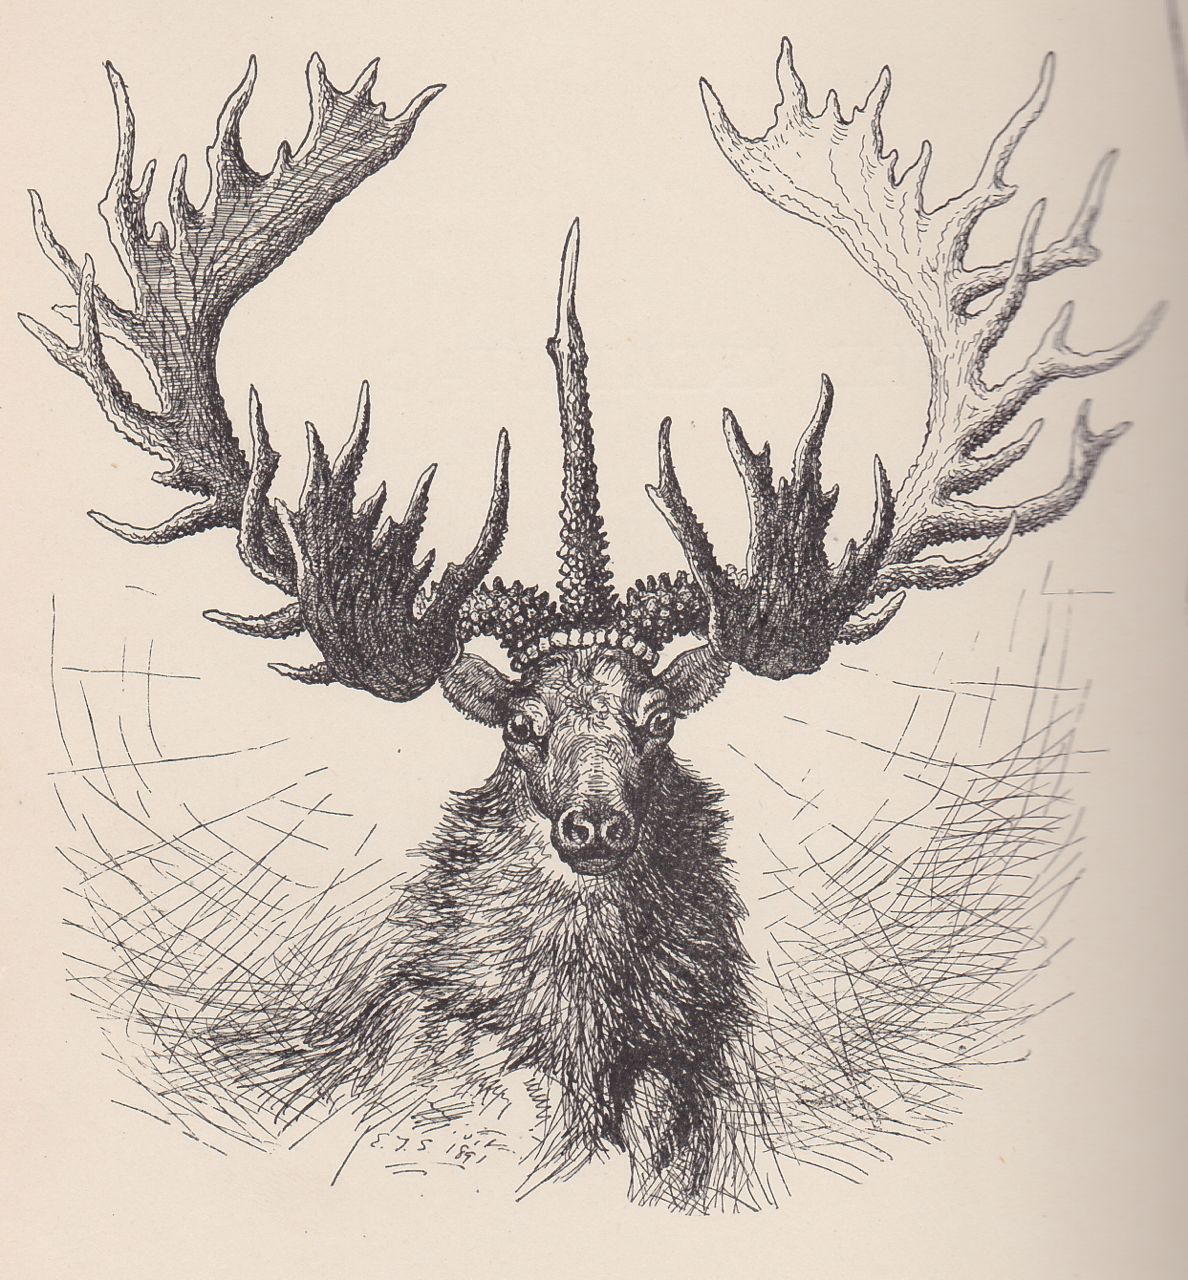 Drawn stag noble Master GreatStagSeton_web The Stag Woodsman